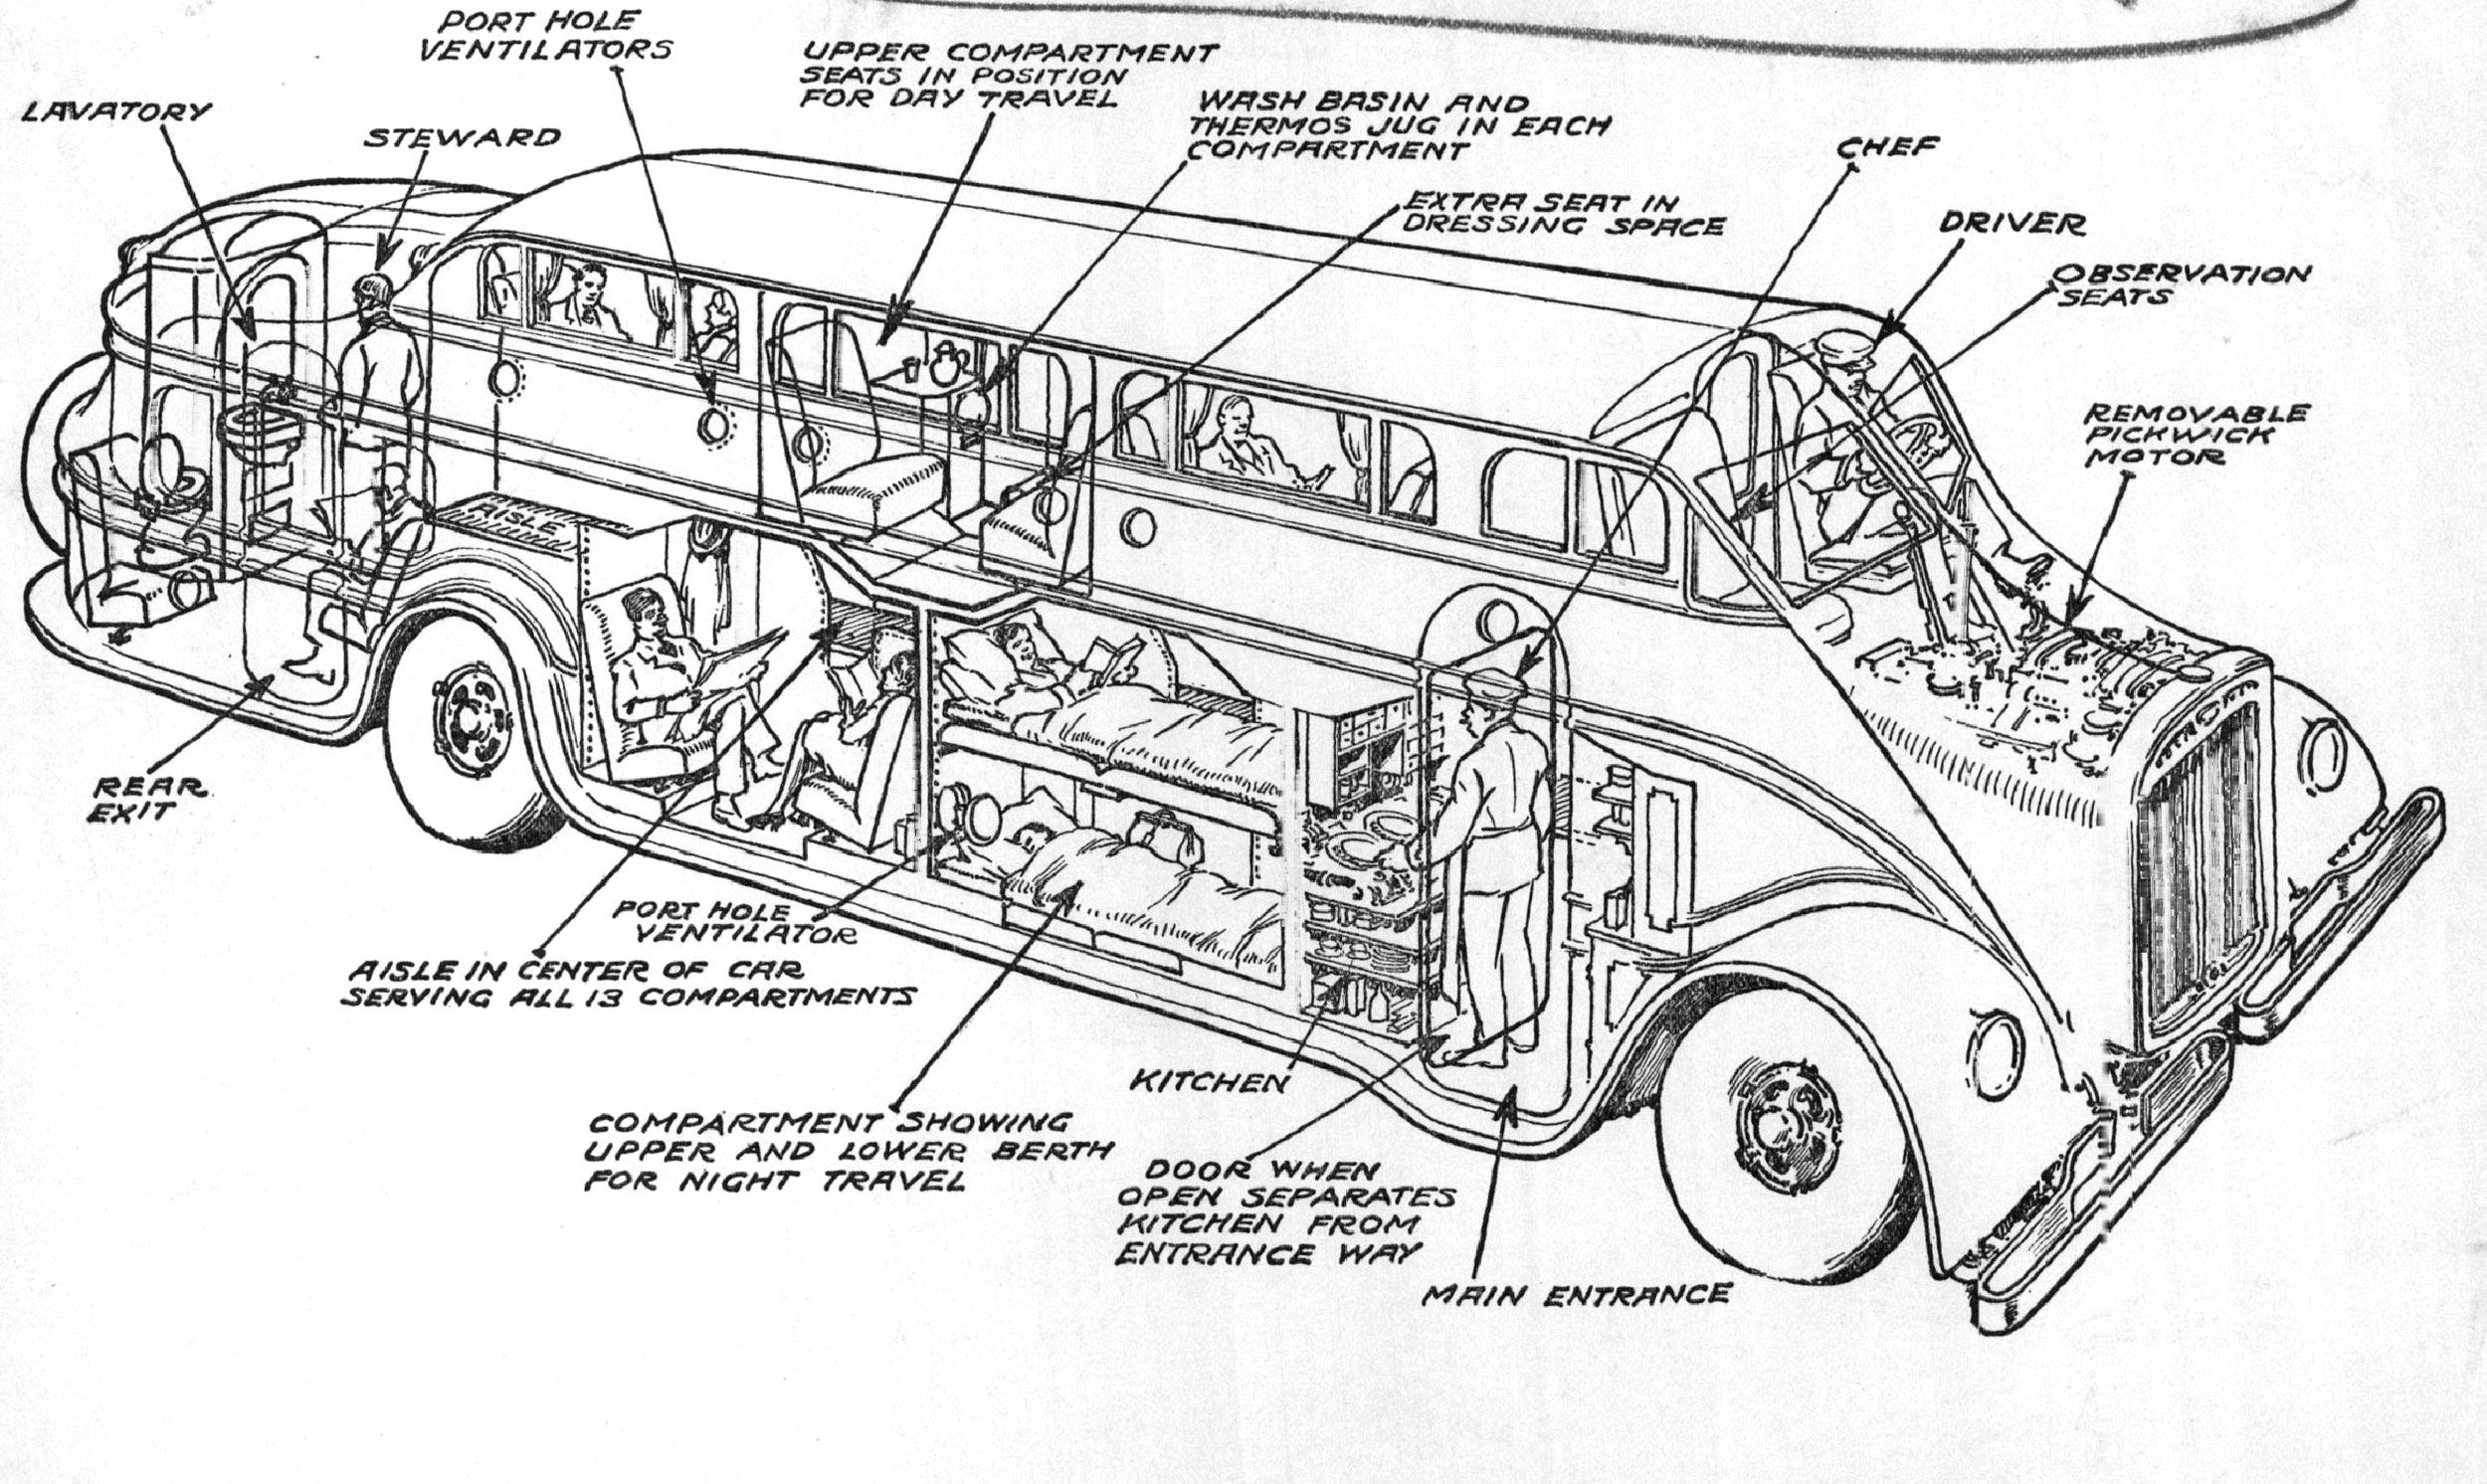 Ford 1710 Ignition Wiring Diagram Pin By Mike On Other Wheels Pinterest Trucks Cars And